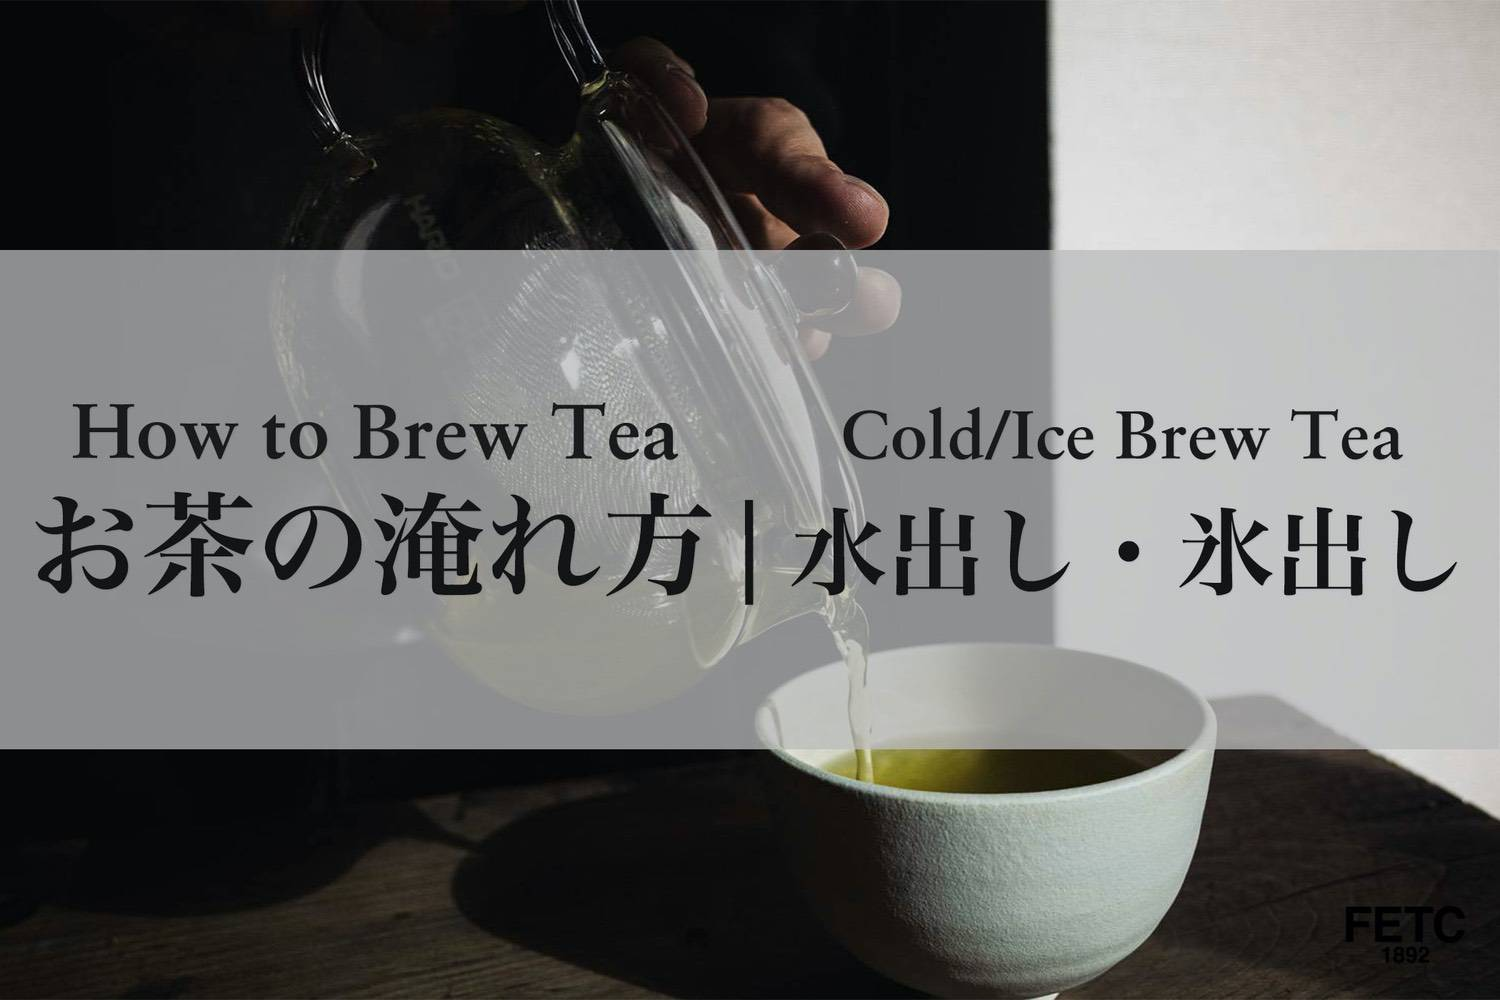 How to Make Cold/Ice Brew Tea